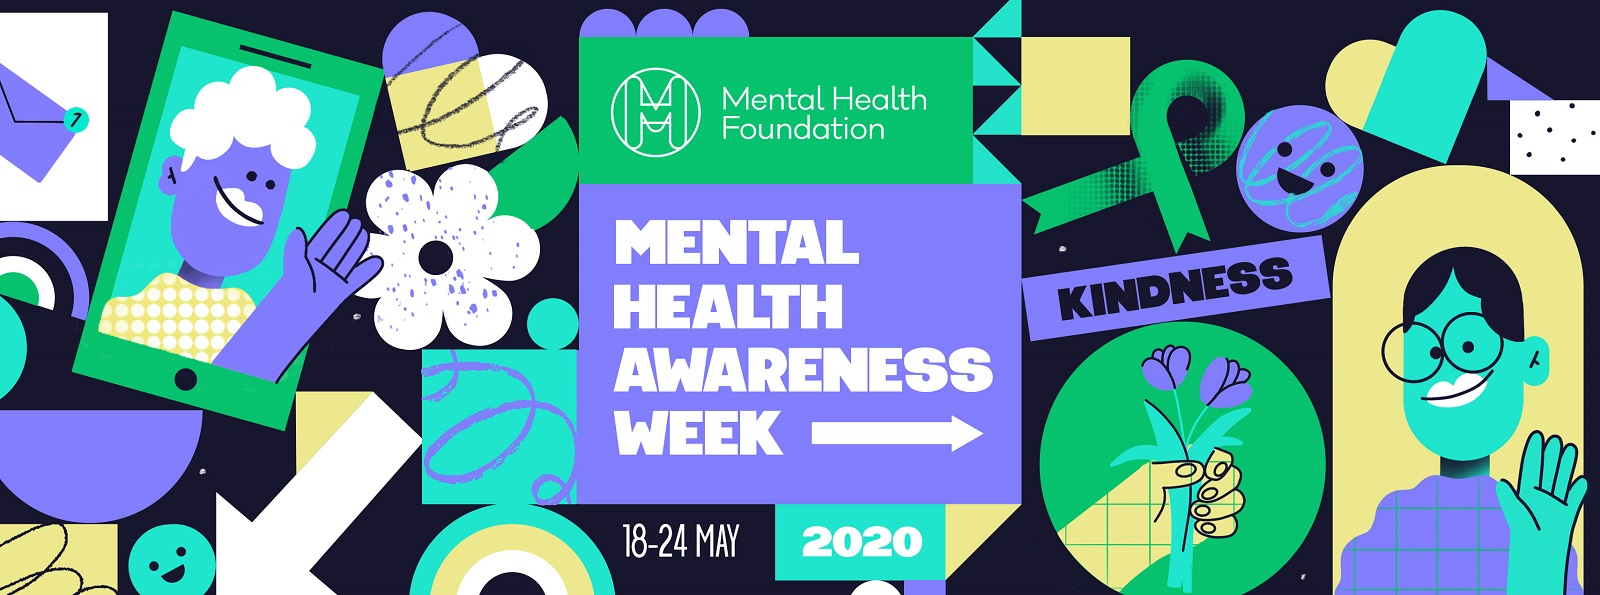 Mental Health Awareness Week 2020: Why Kindness Matters